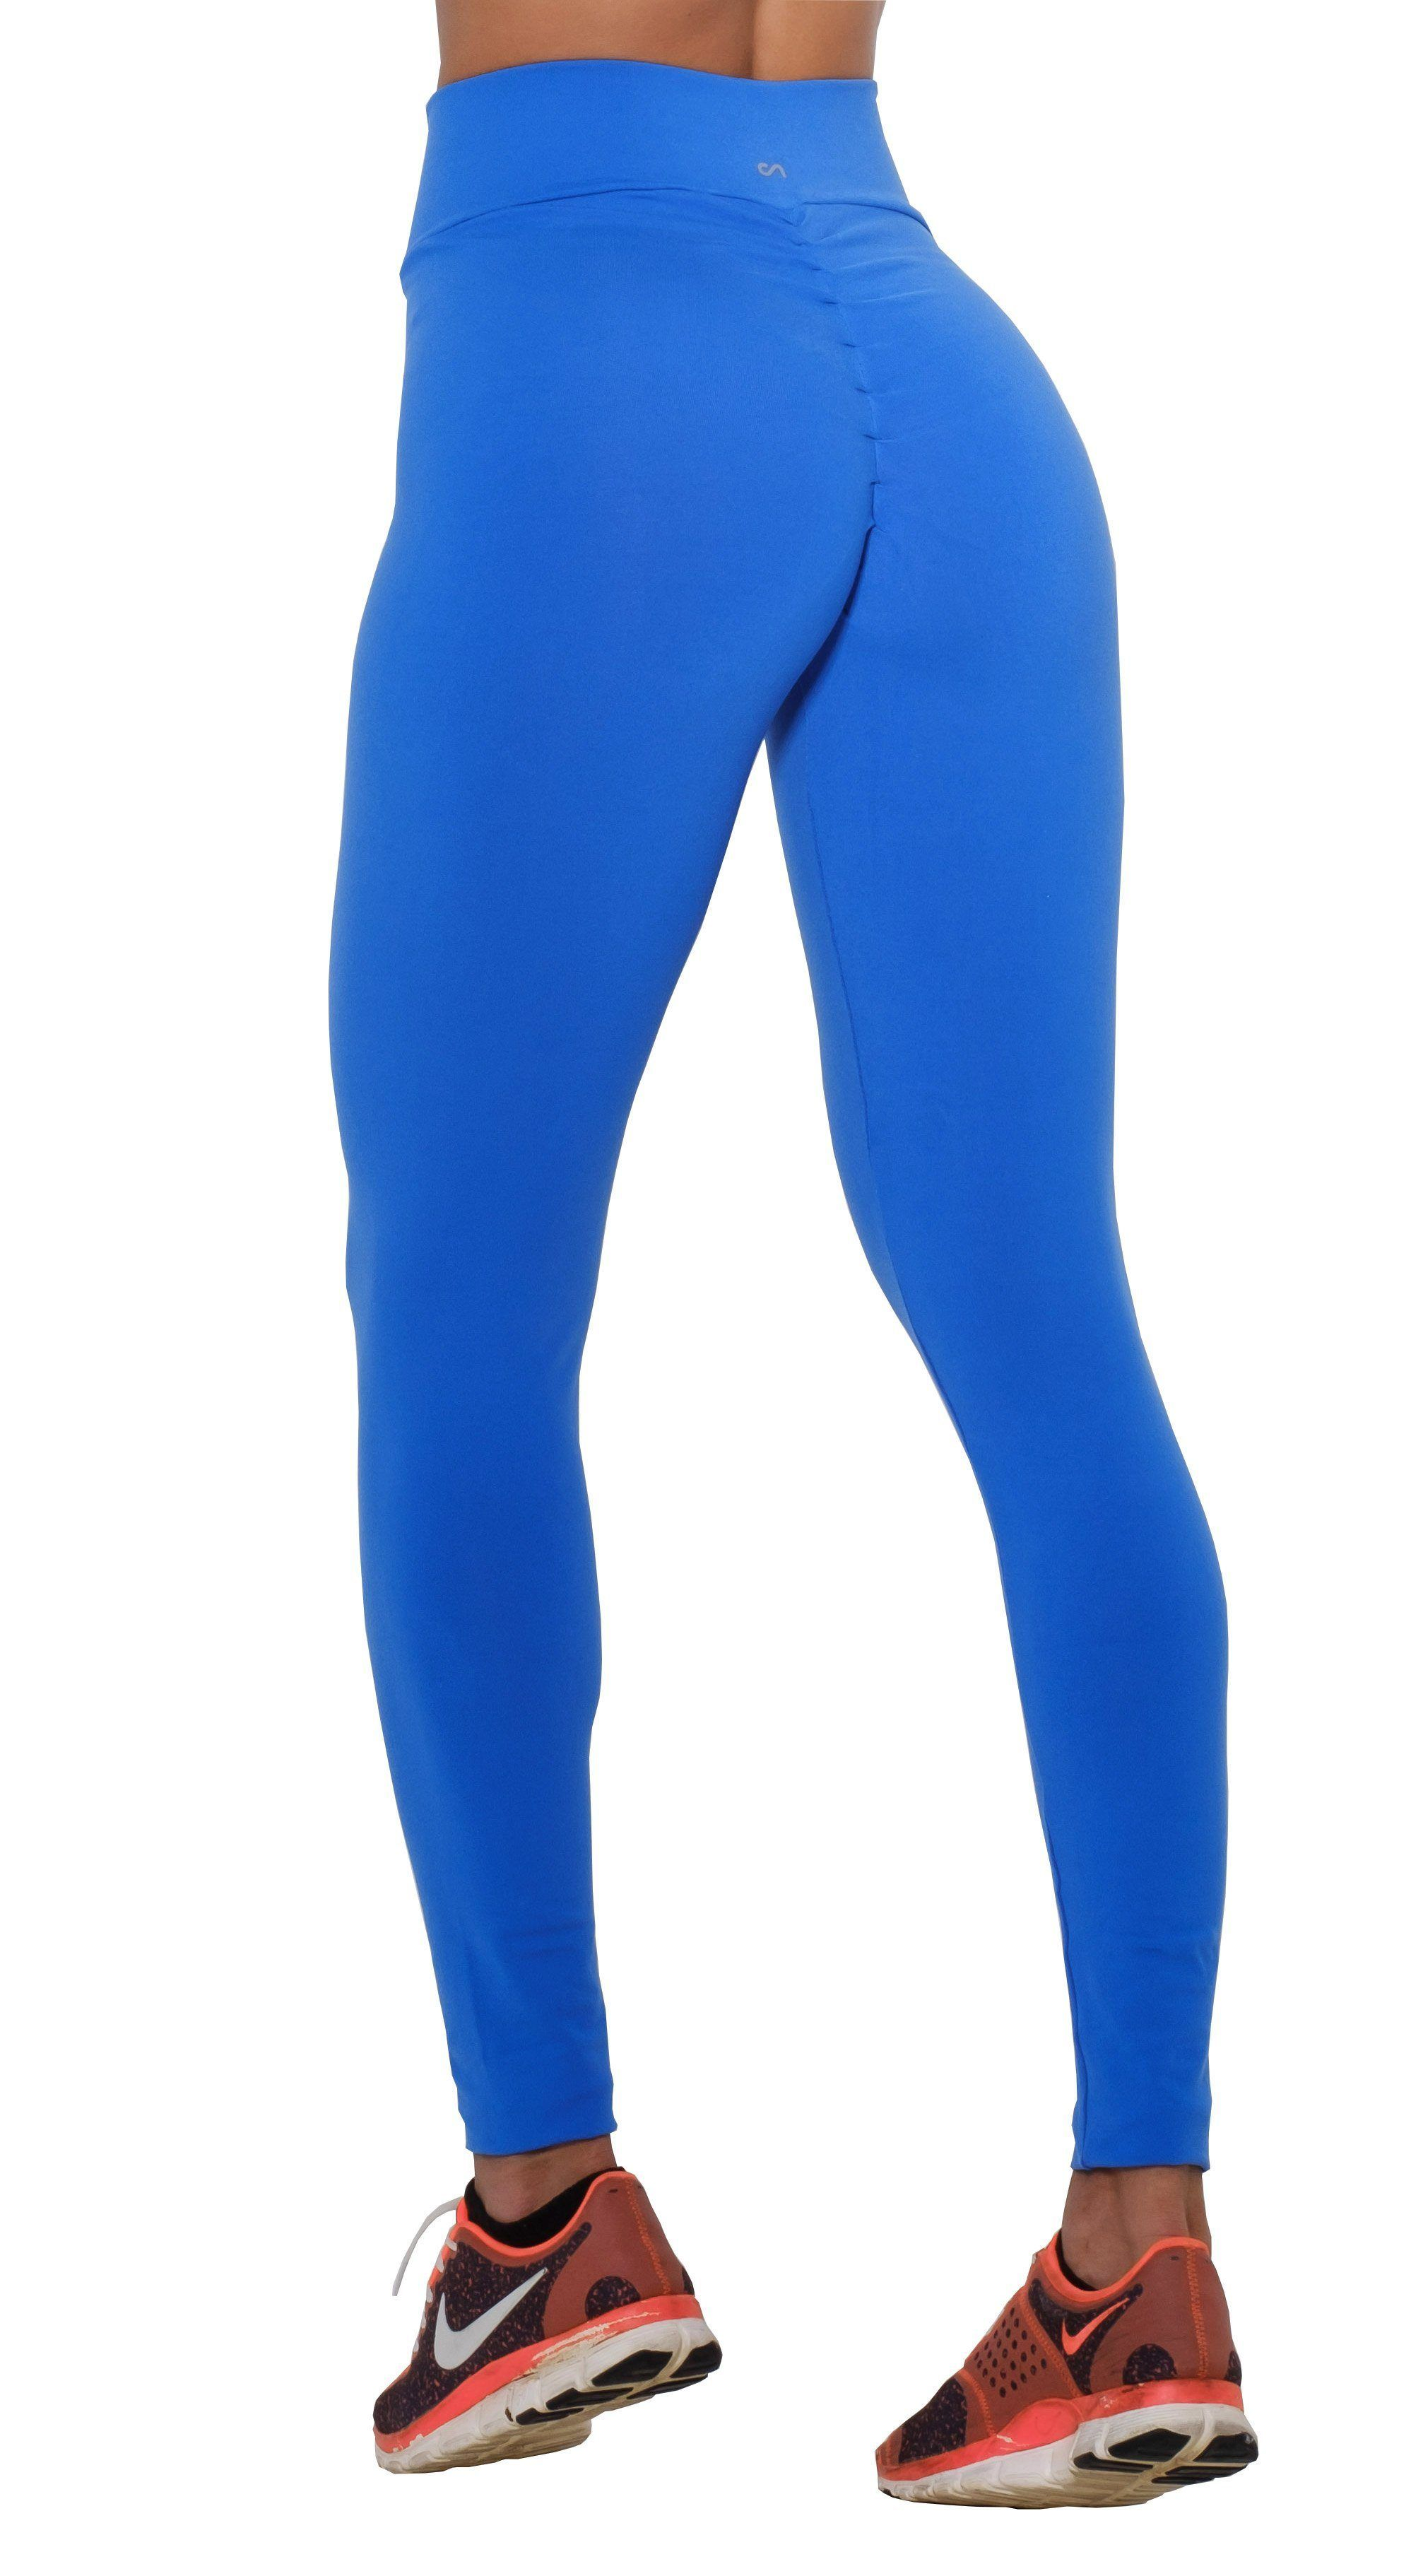 f653710b303e2 Canoan - Brazilian Workout Legging - Scrunch Booty Lift! Royal Blue ...